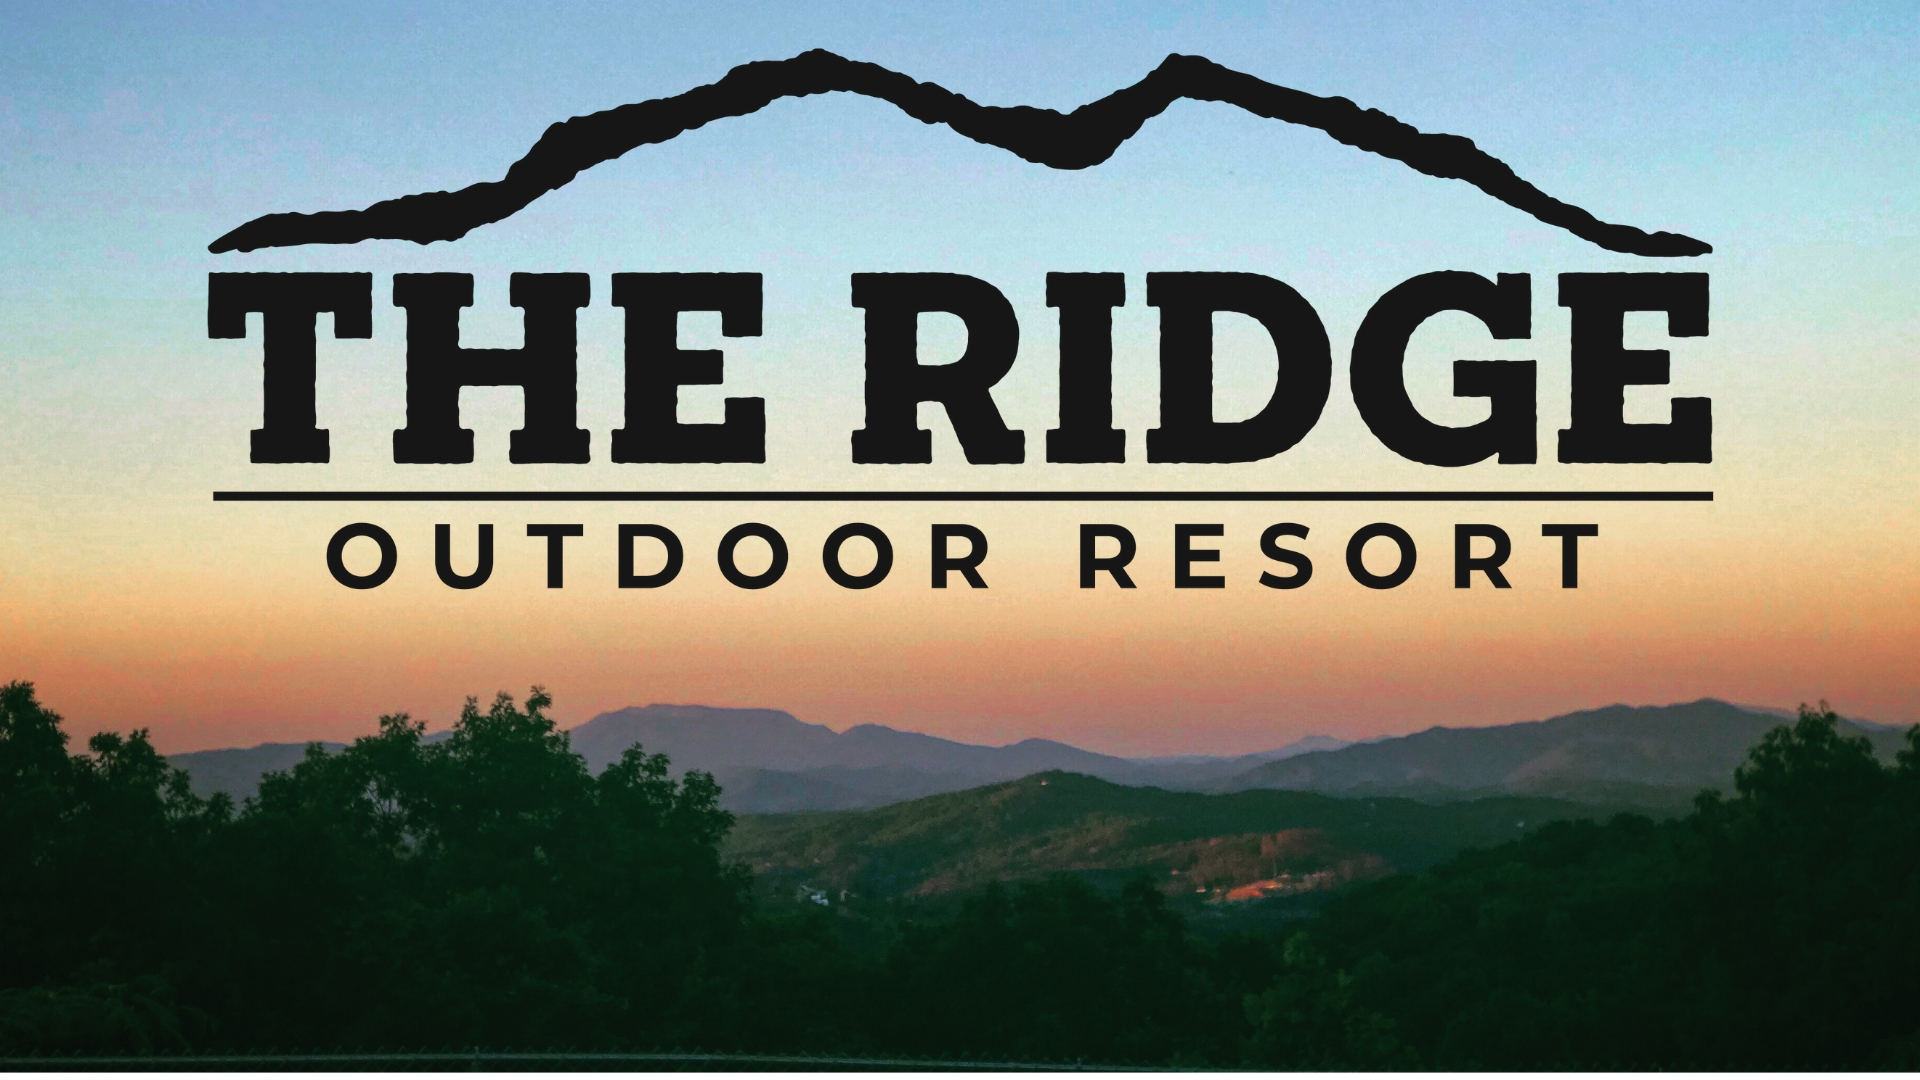 The Ridge Outdoor Resort Pigeon Forge Campground